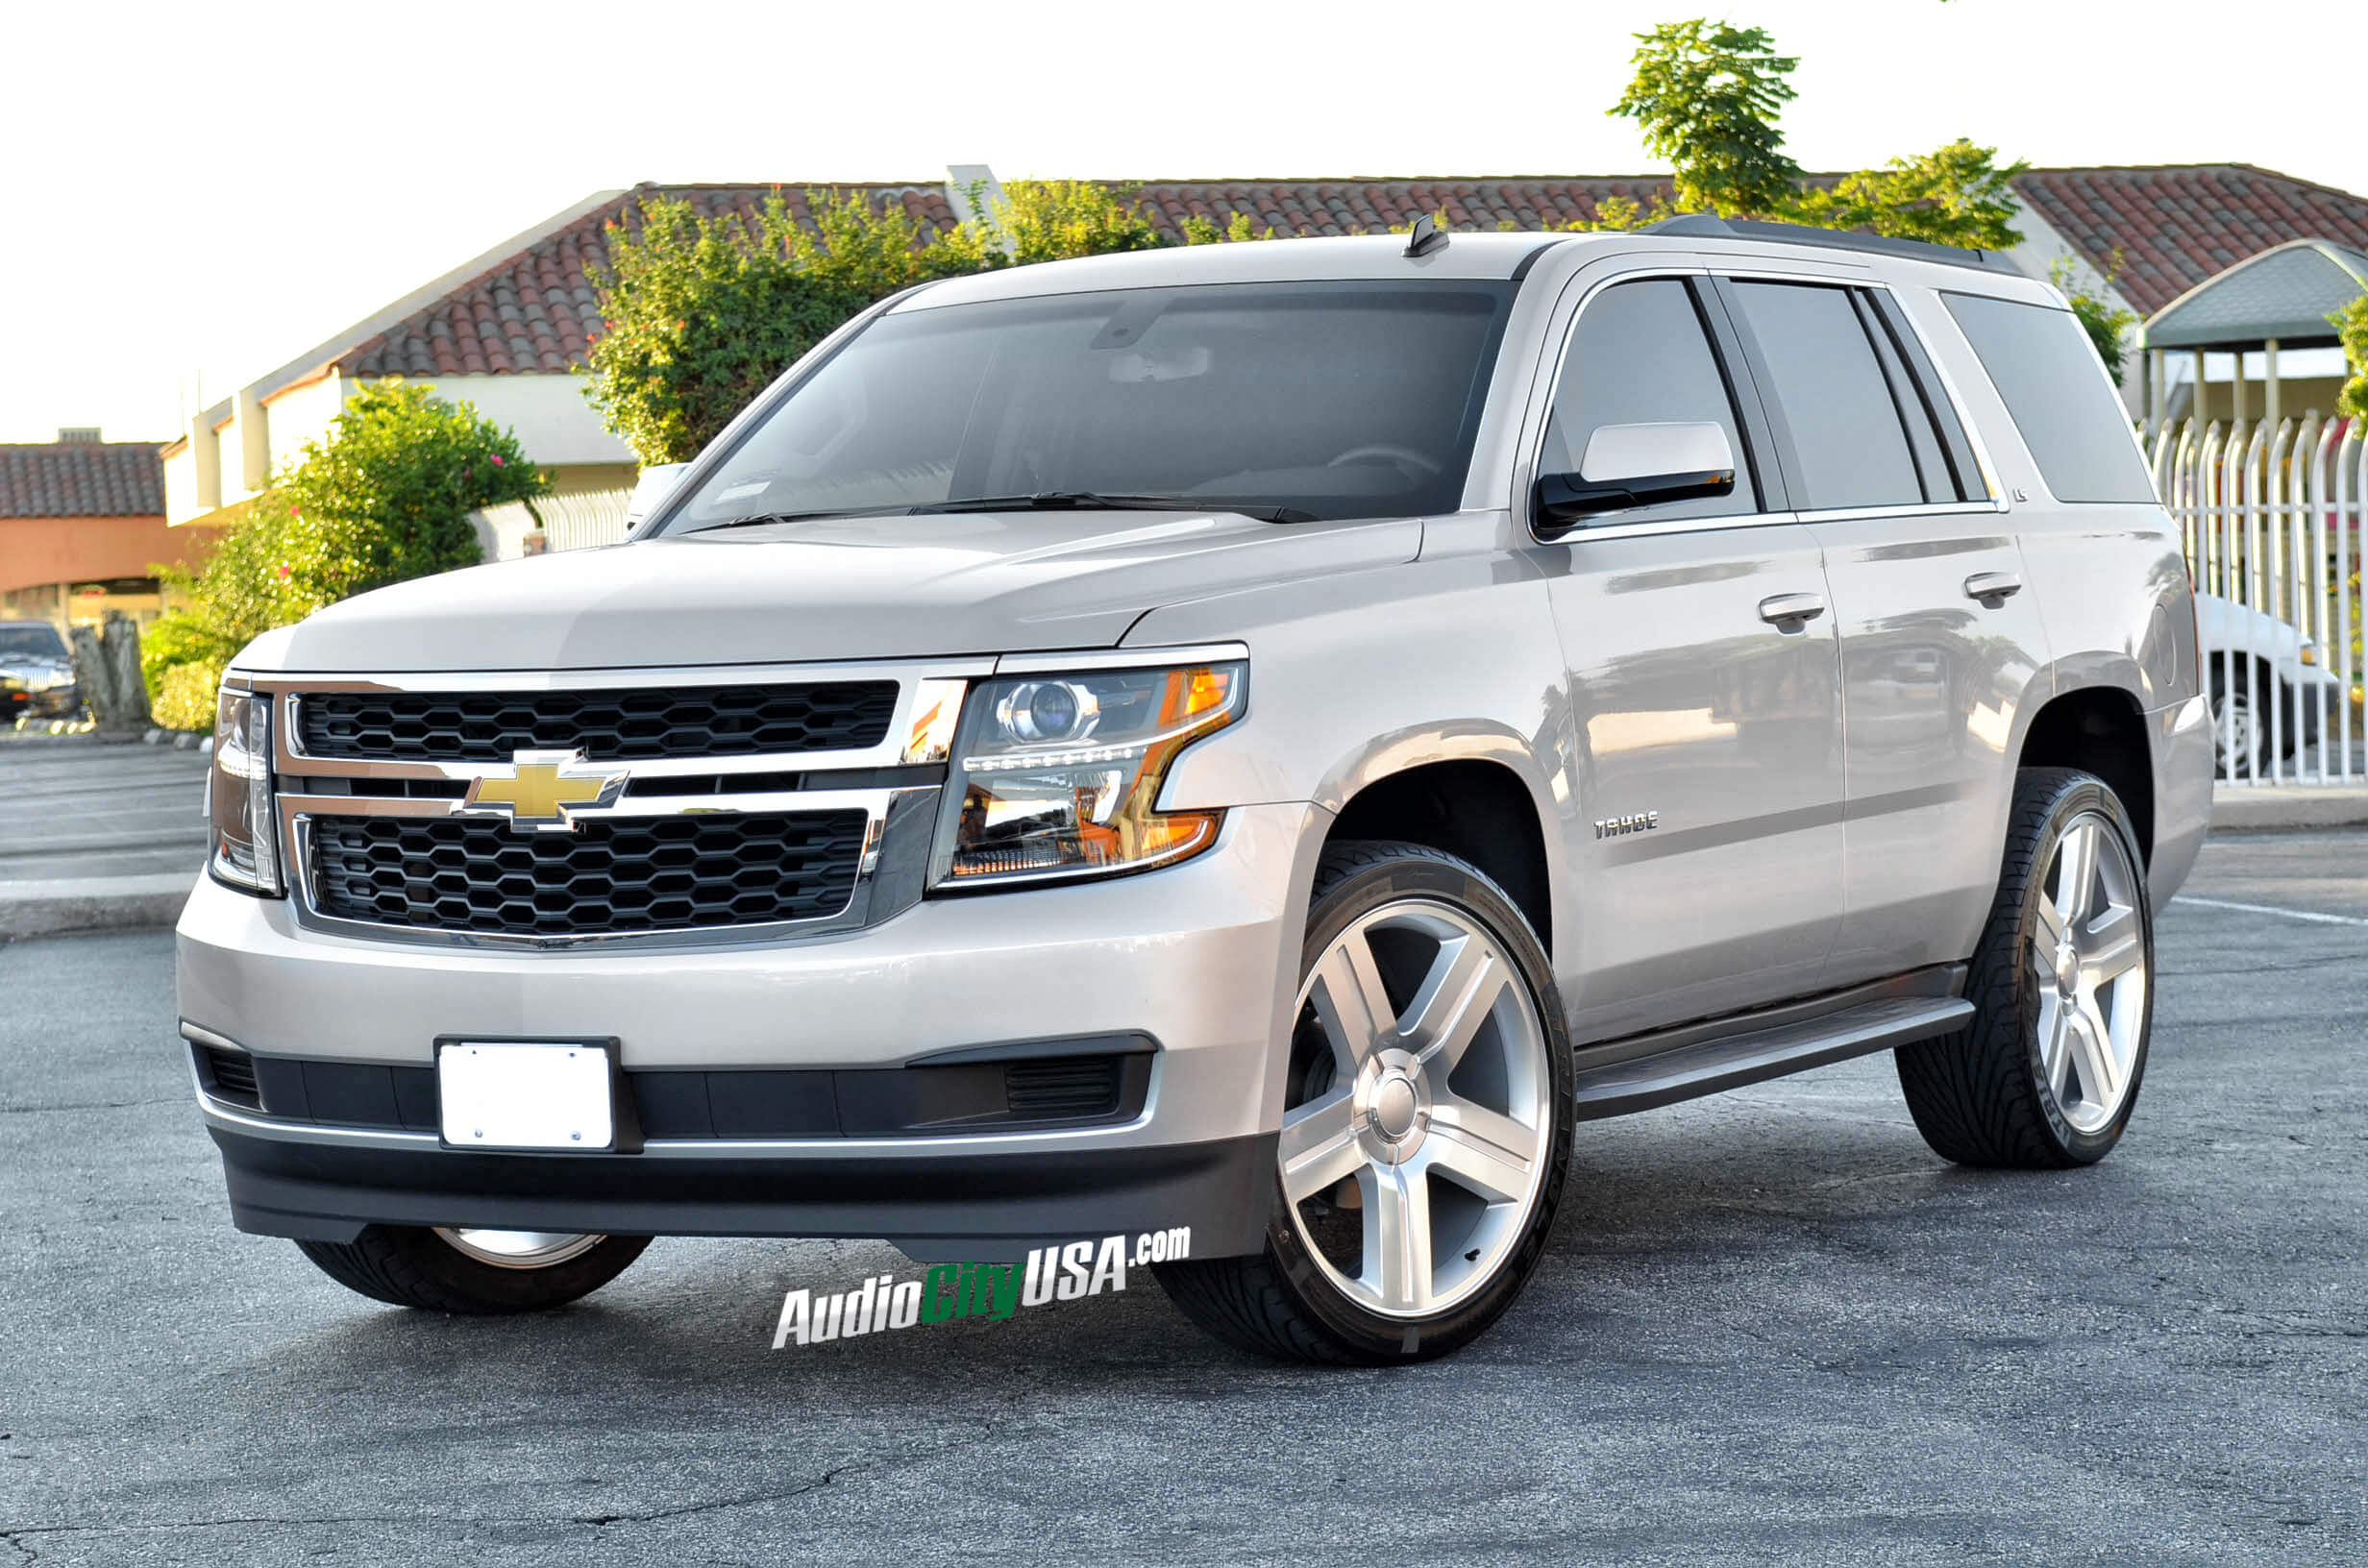 24 texas edition wheels silver machine on 2014 chevy tahoe